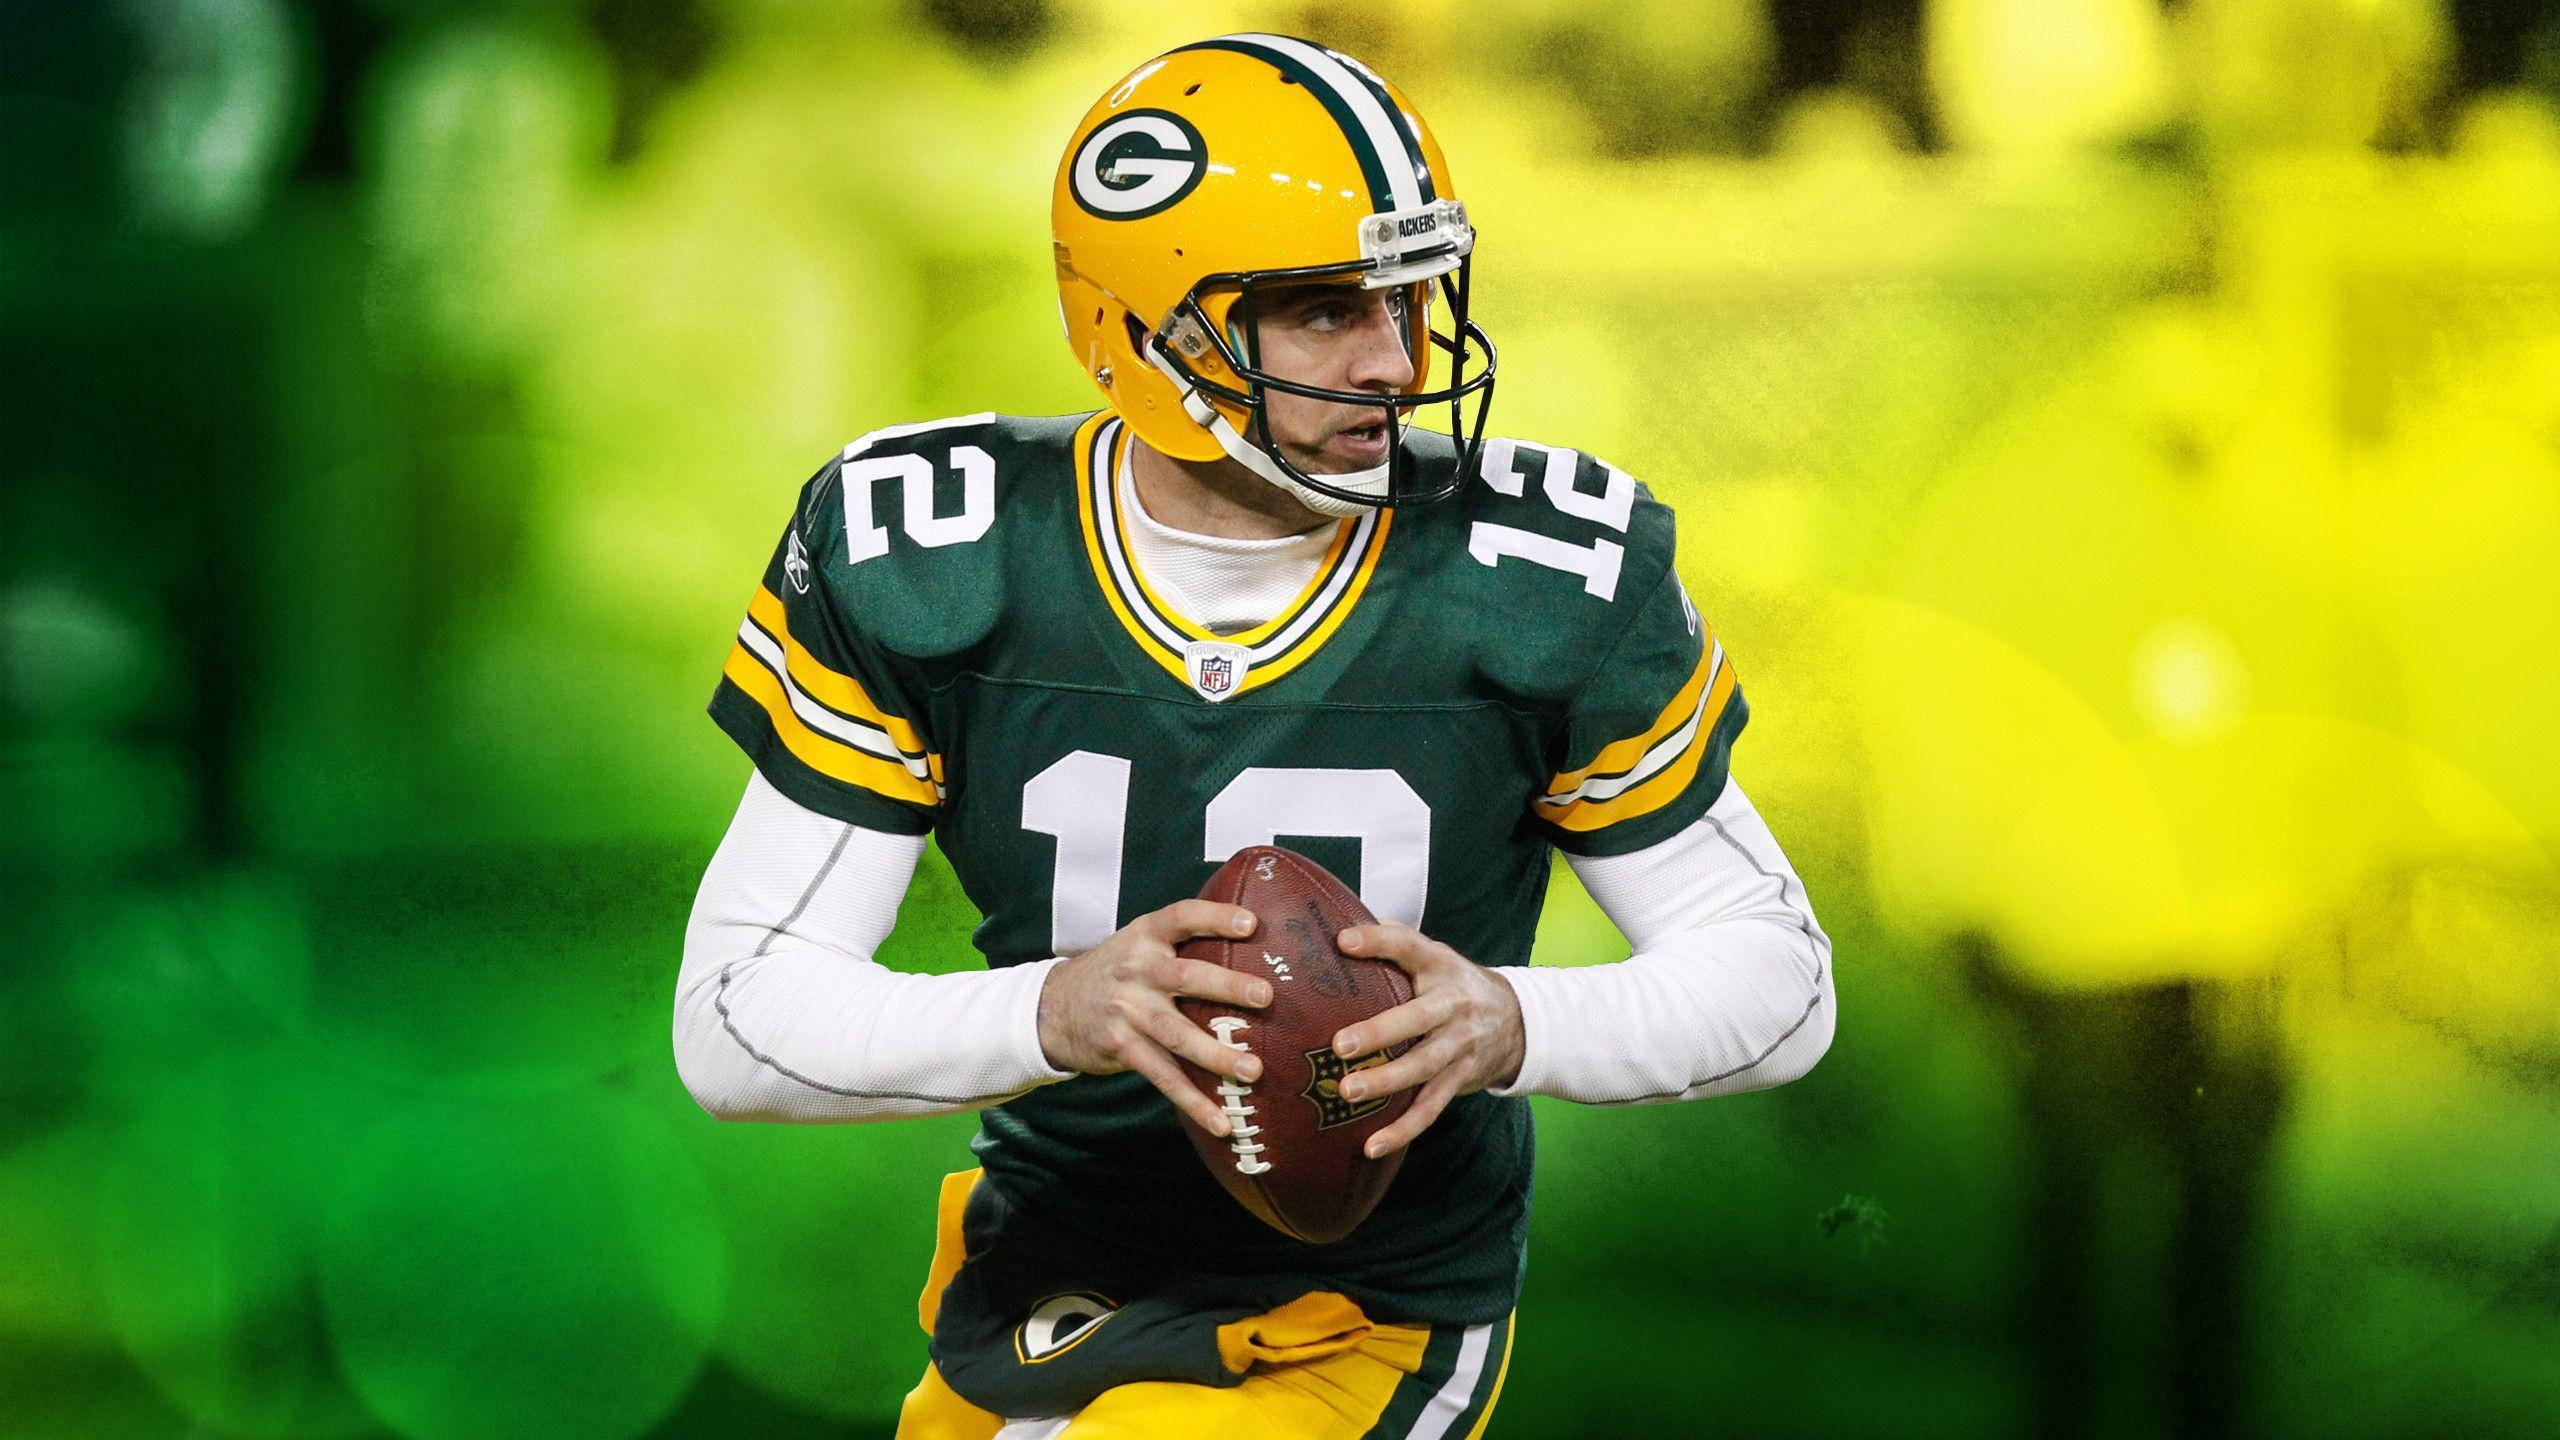 Mac iMac 27 Green bay Wallpapers HD, Desktop Backgrounds 2560x1440